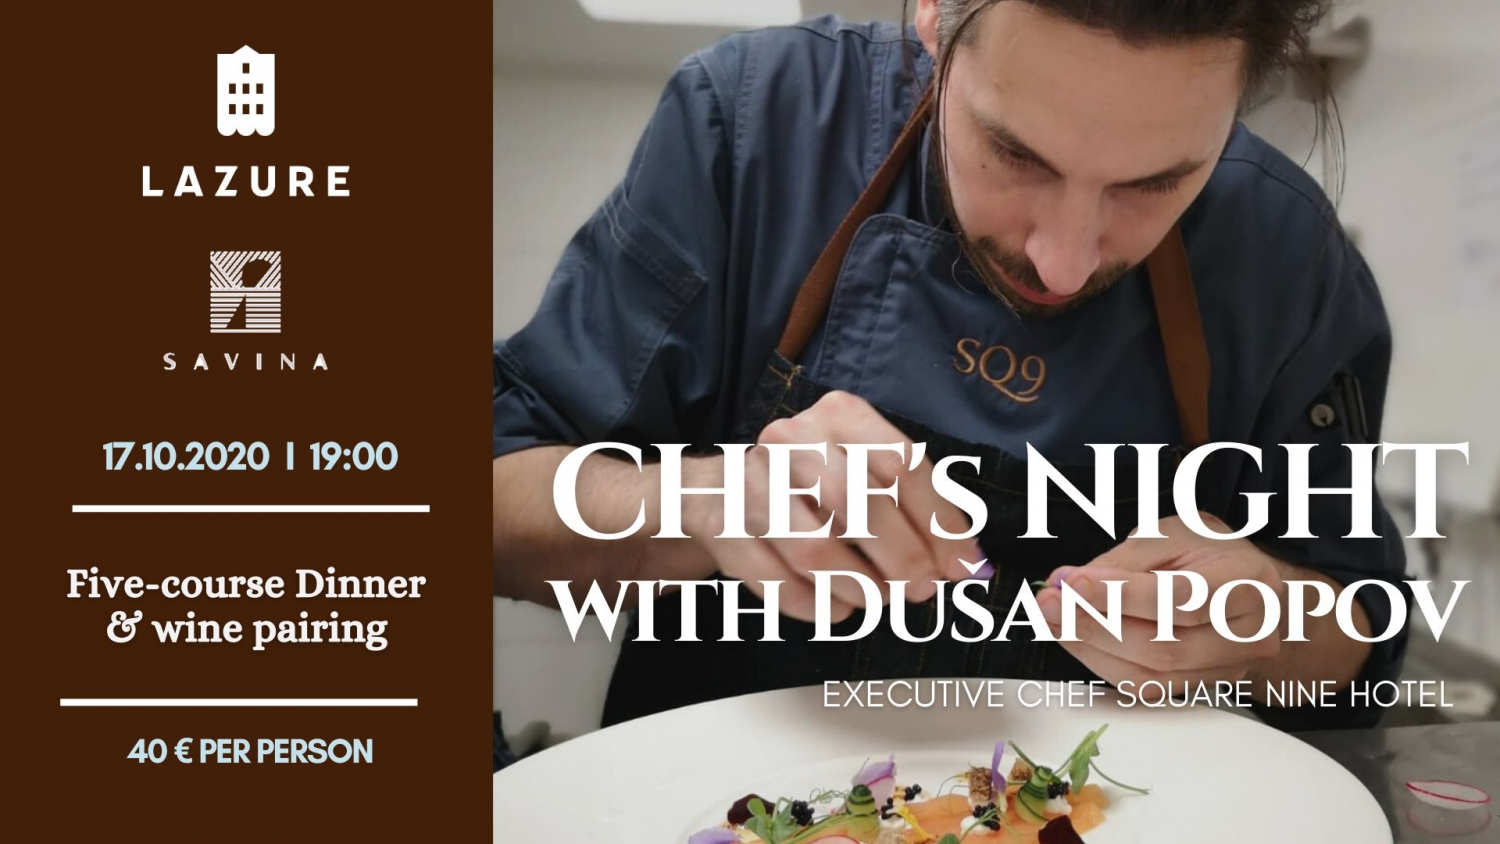 Chef's Night With Dusan Popov at Lazure Hotel